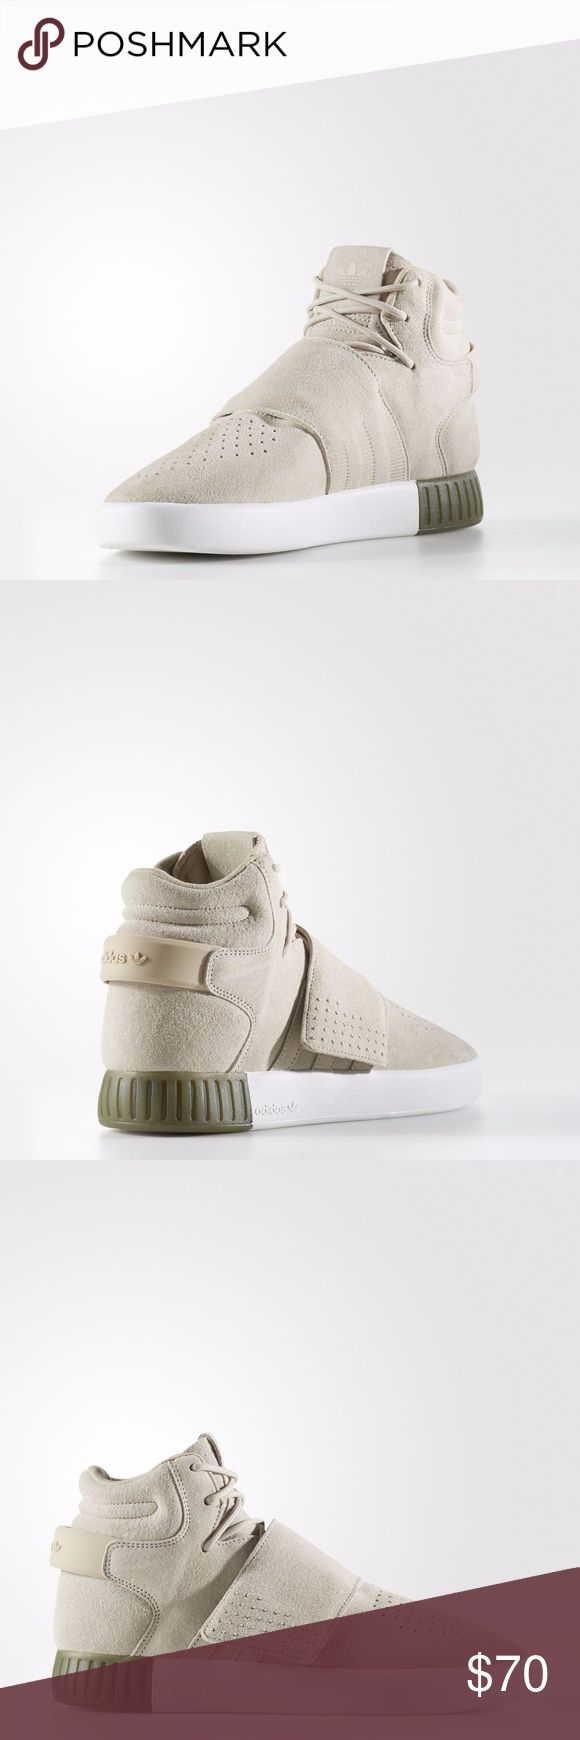 Adidas Women Sneakers Women's Tubular Invader Strap  W Clay Brown / B39366 / Adidas Olive New Item Never been Worn Comes with original box. adidas Shoes Sneakers